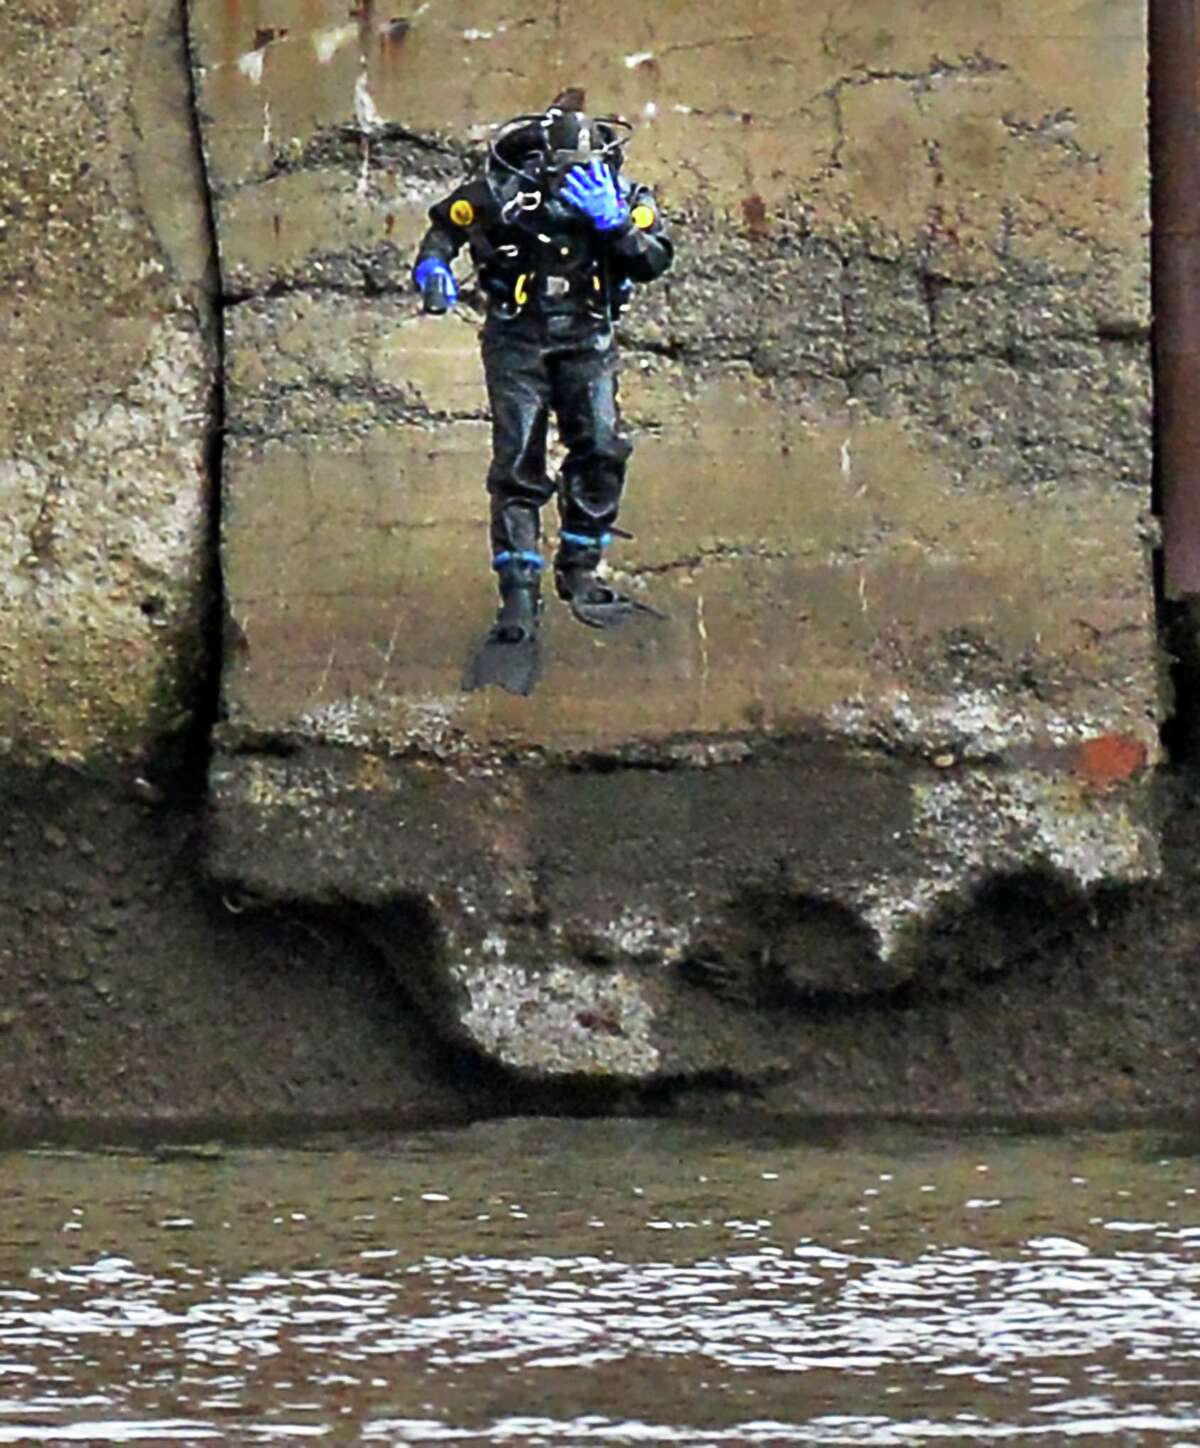 A state police diver jumps into th Hudson River as the search continues for Noel Alkaramla below the John P. Taylor Apartments Tuesday Dec. 15, 2015 in Troy, NY. (John Carl D'Annibale / Times Union)